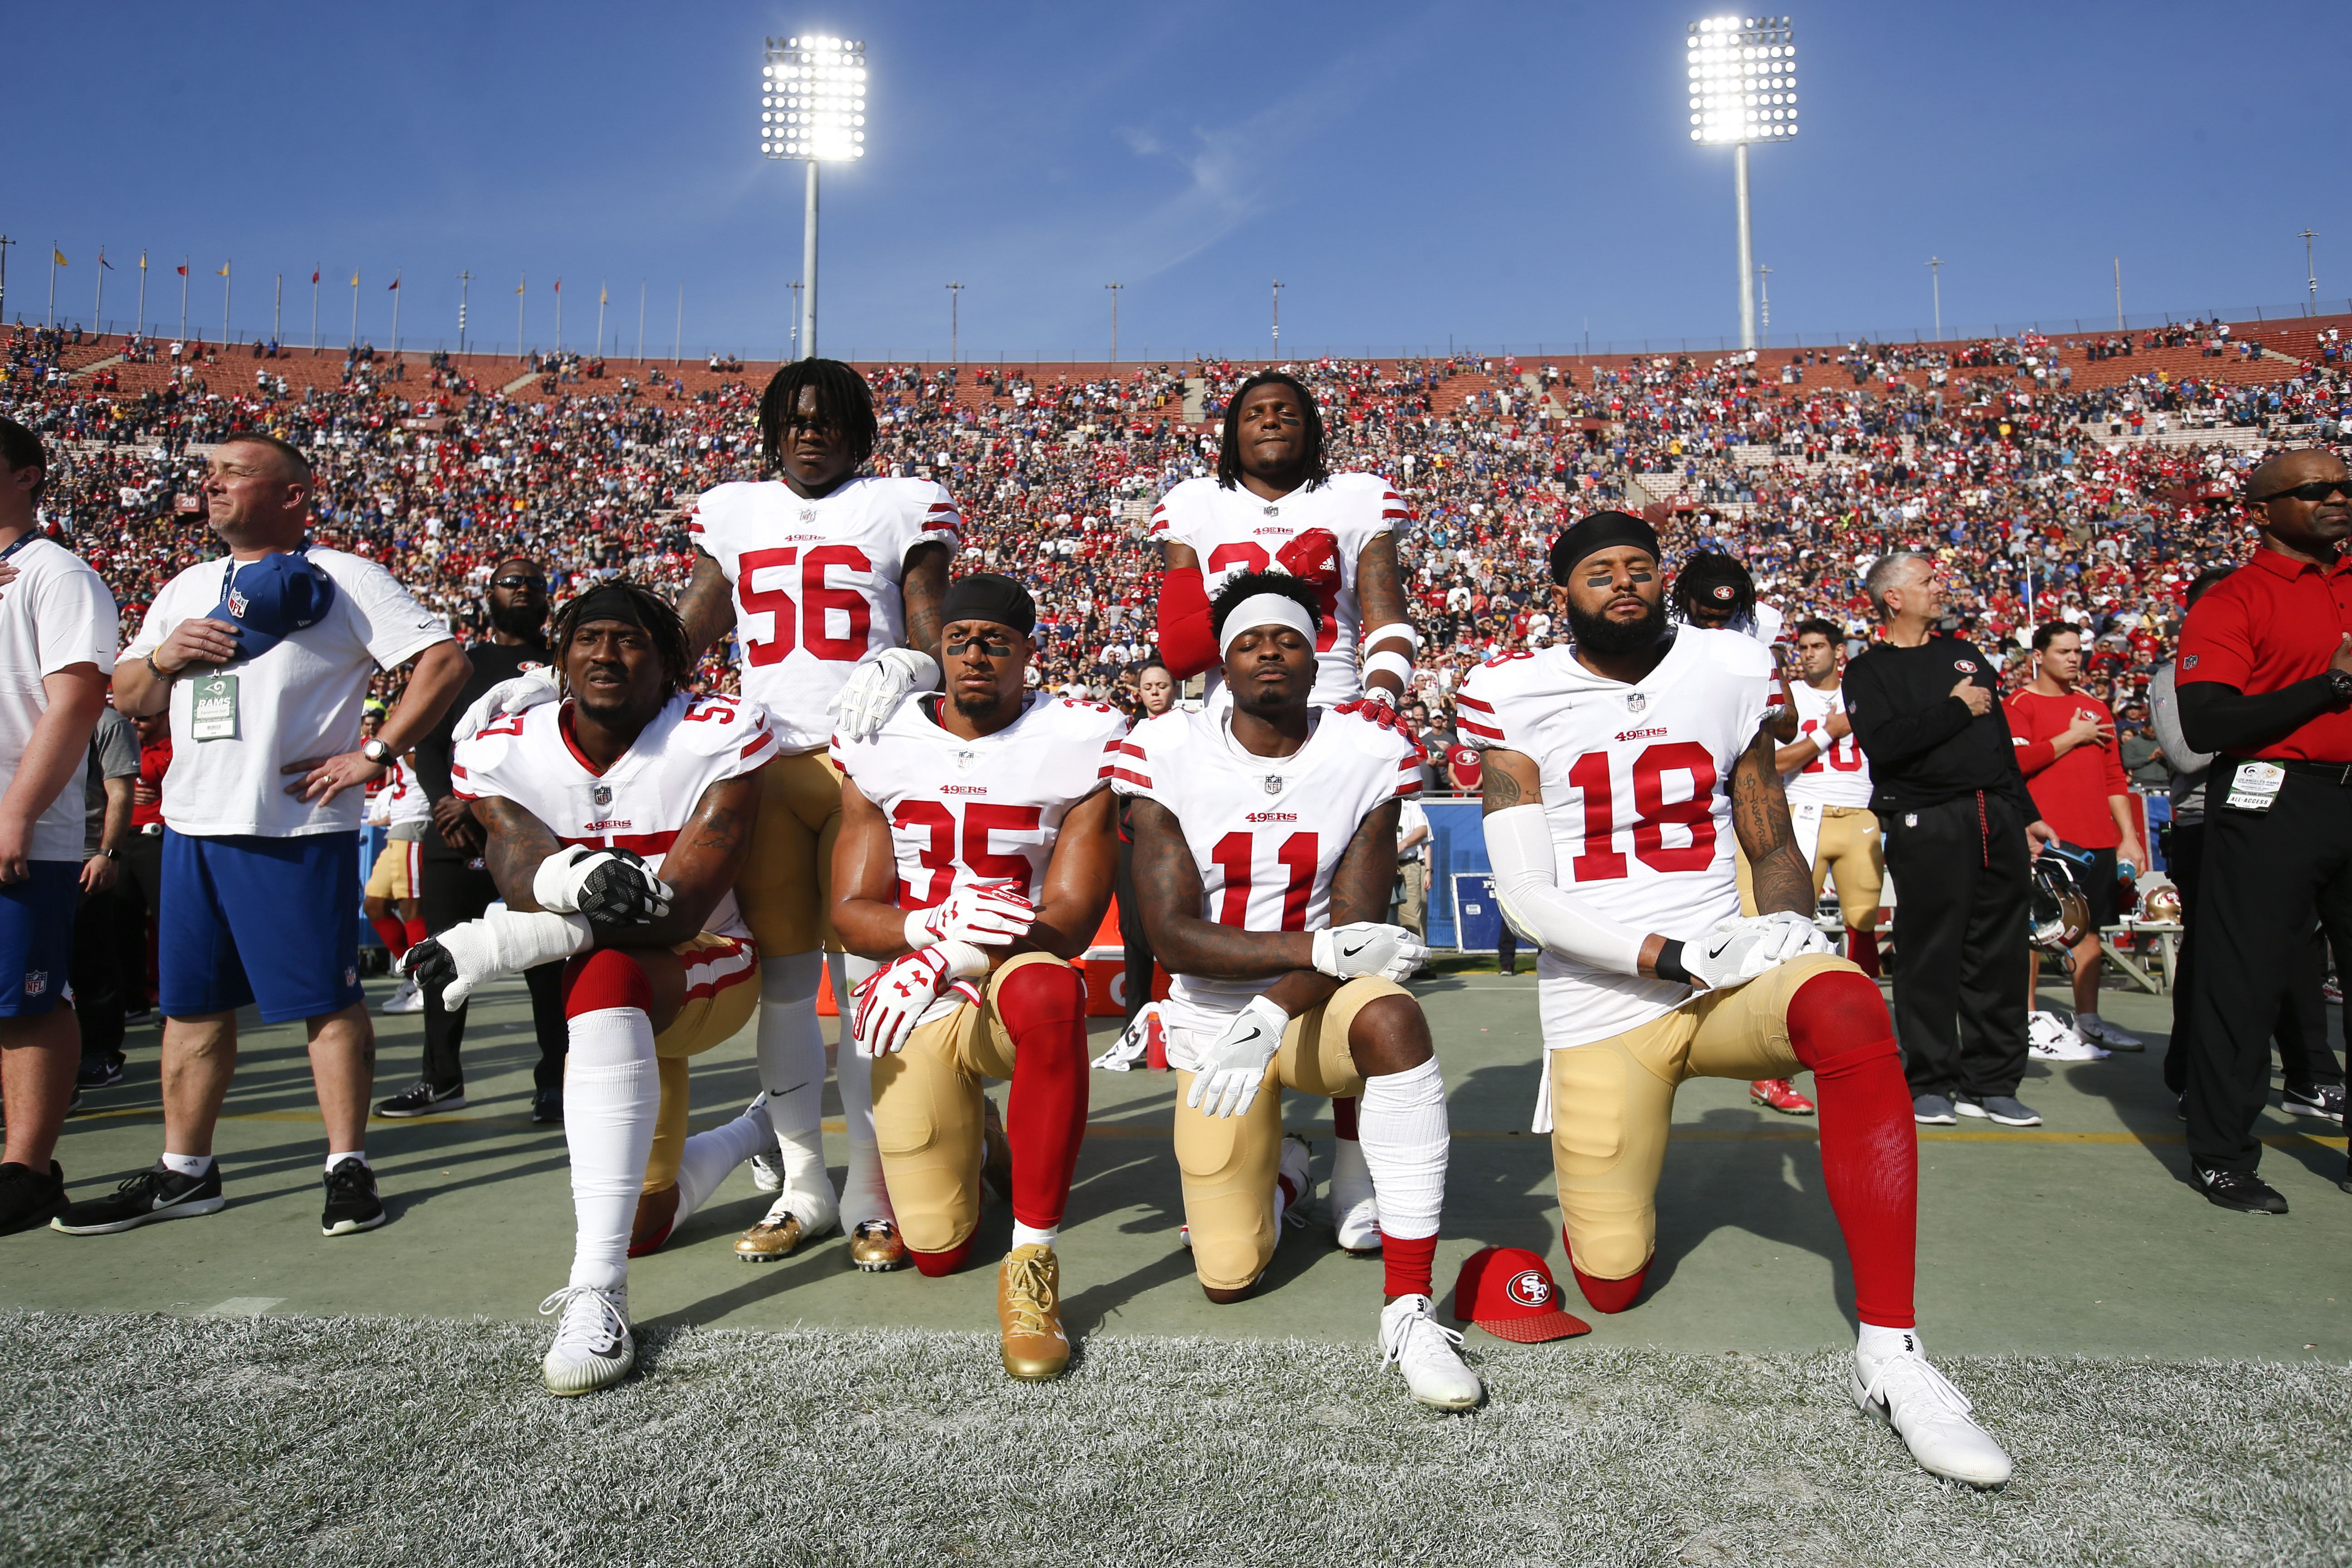 DEC. 31 2017: San Francisco 49ers players kneel during the national anthem